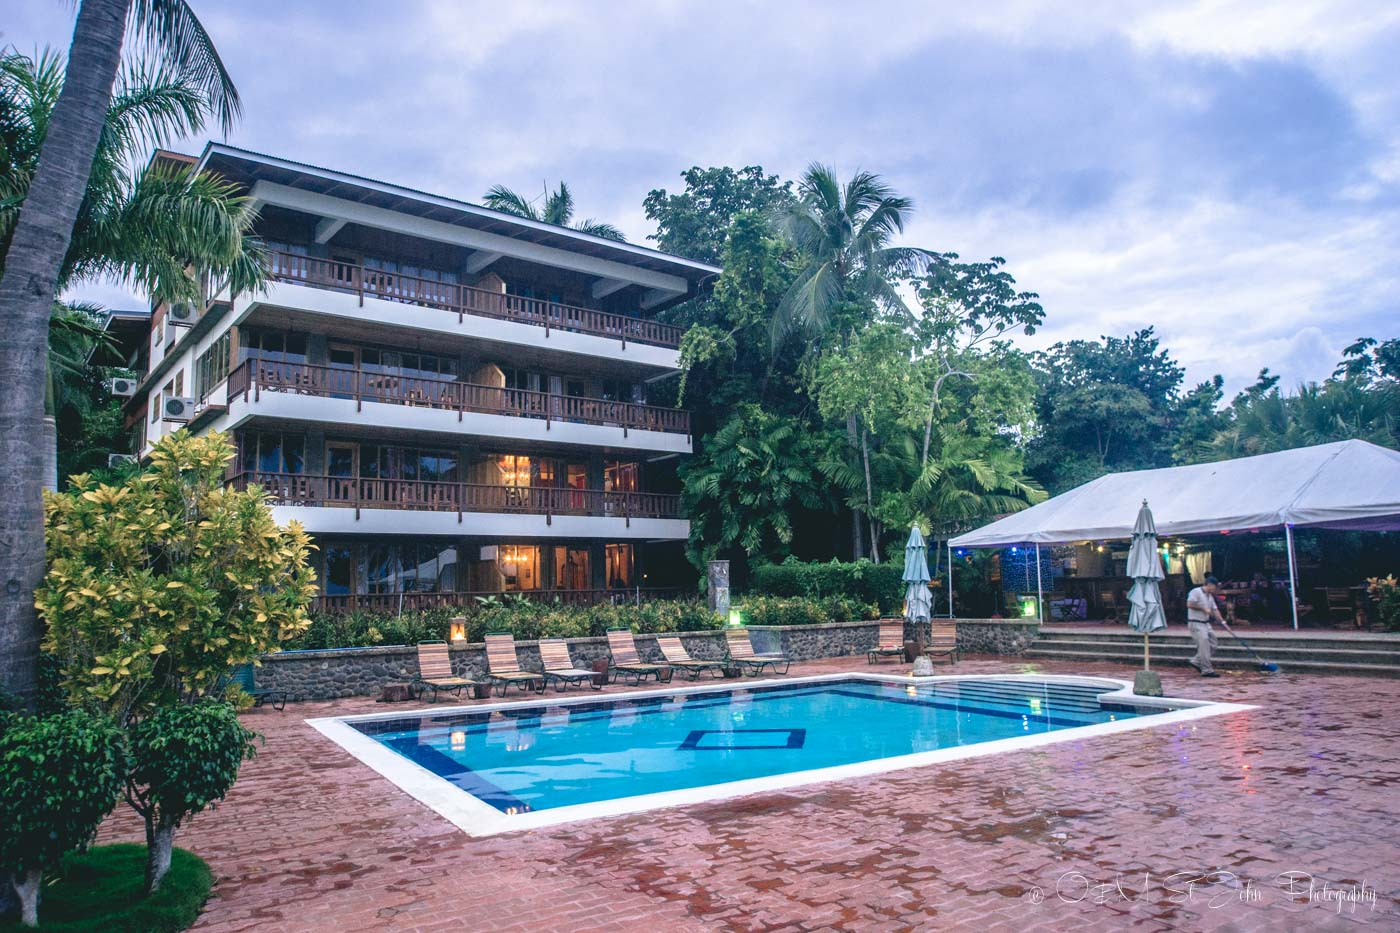 Manuel Antonio National Park: Costa Verde Hotel